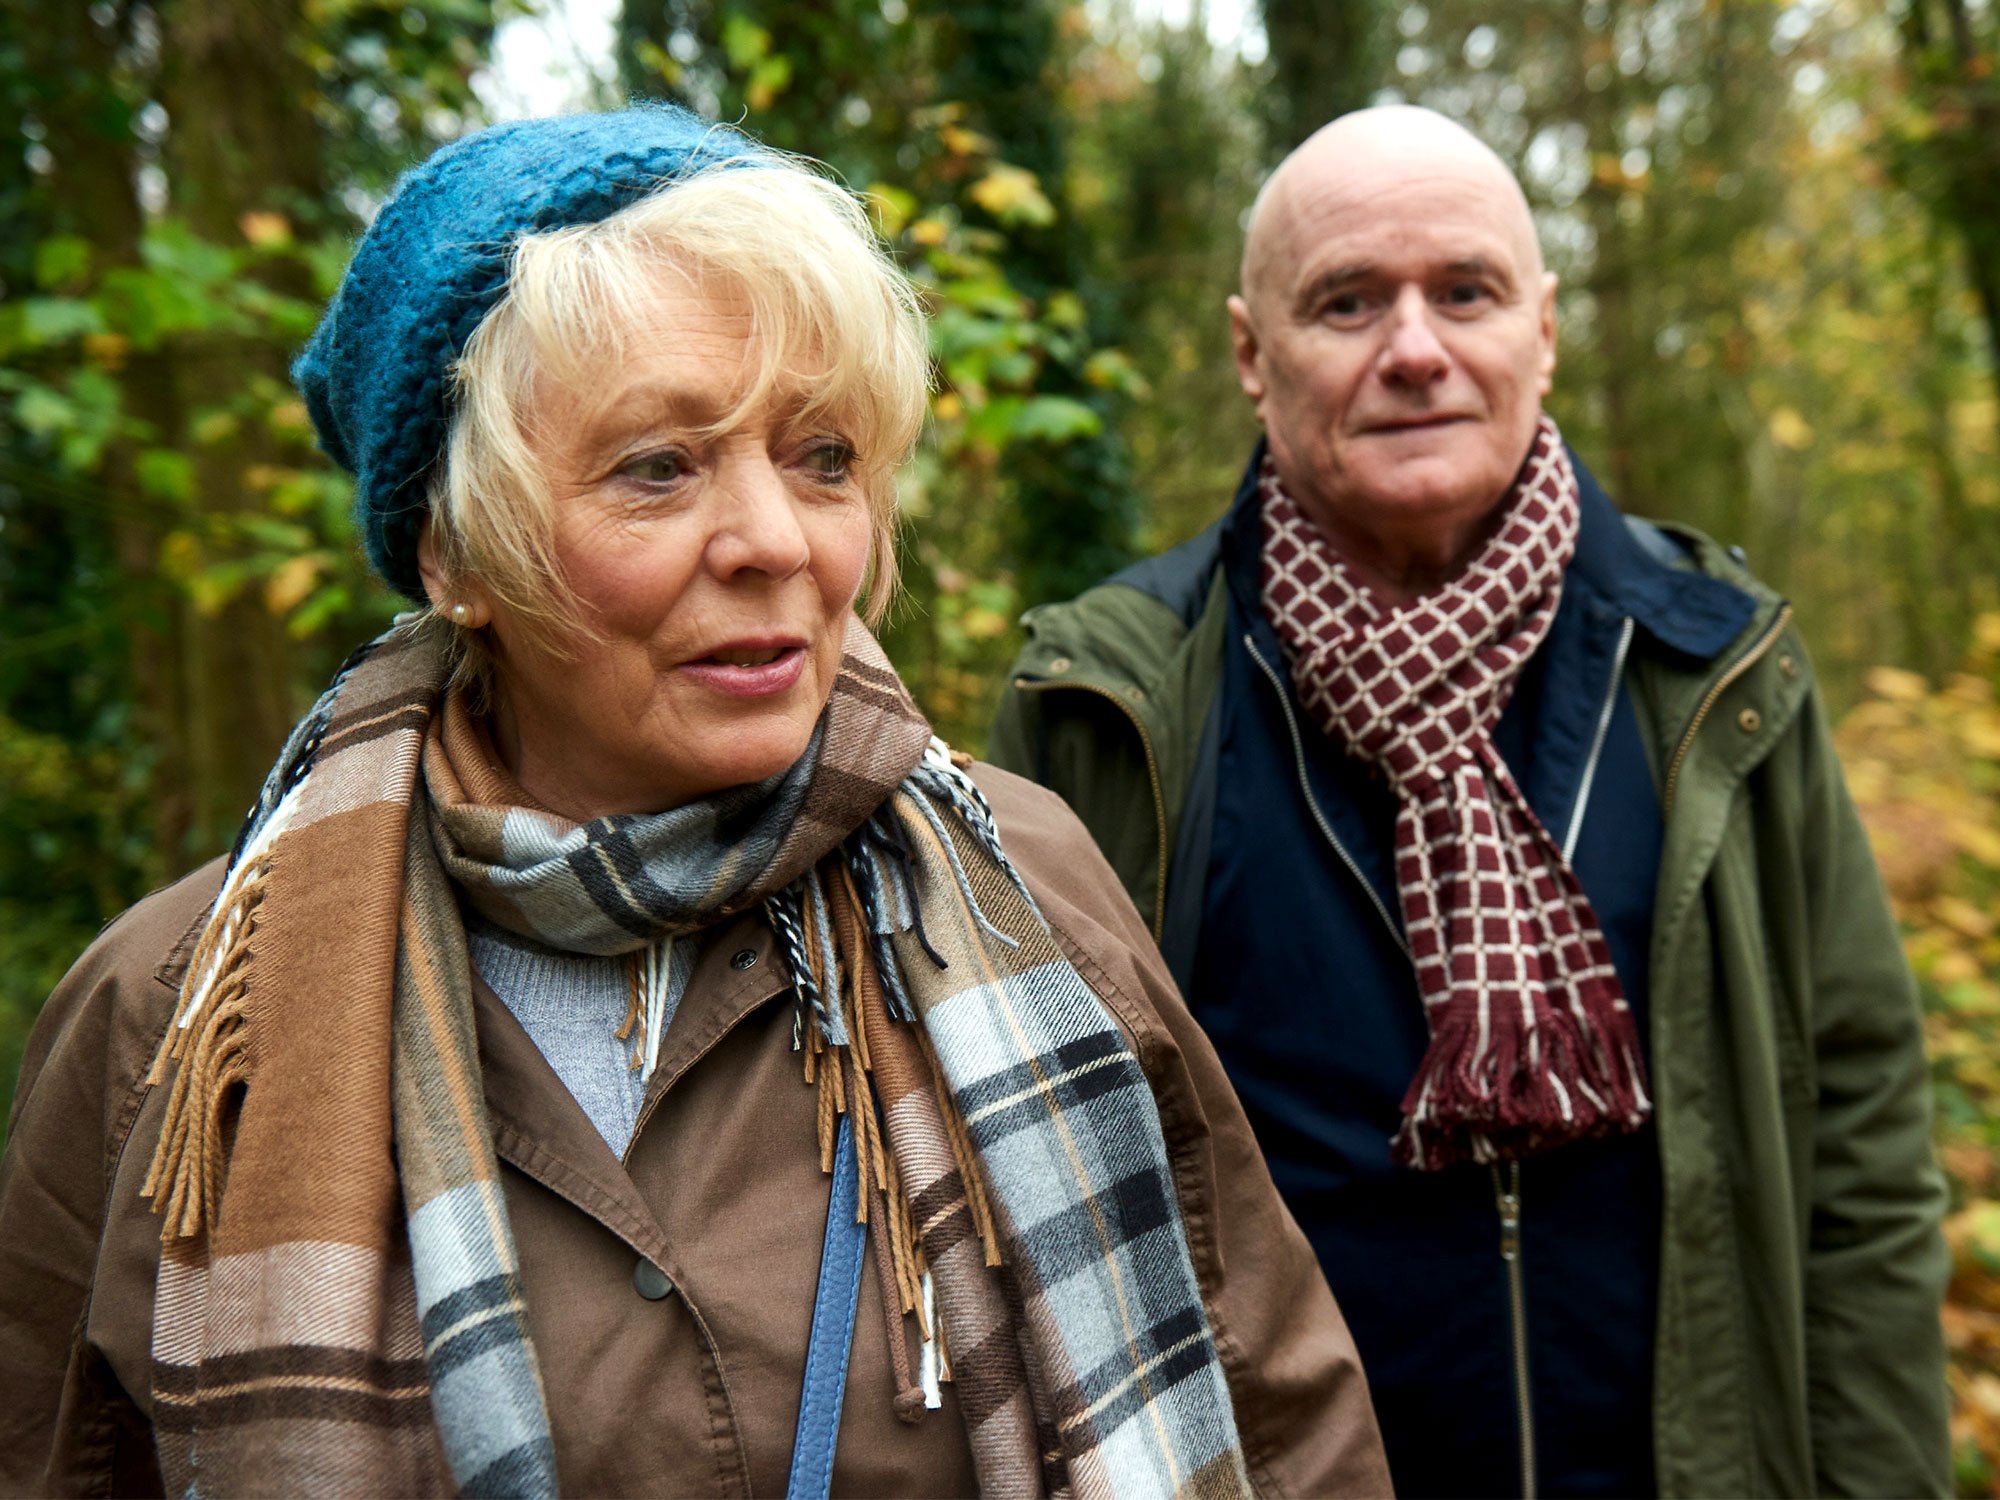 Alison Steadman and Dave Johns in 23 Walks (2020)